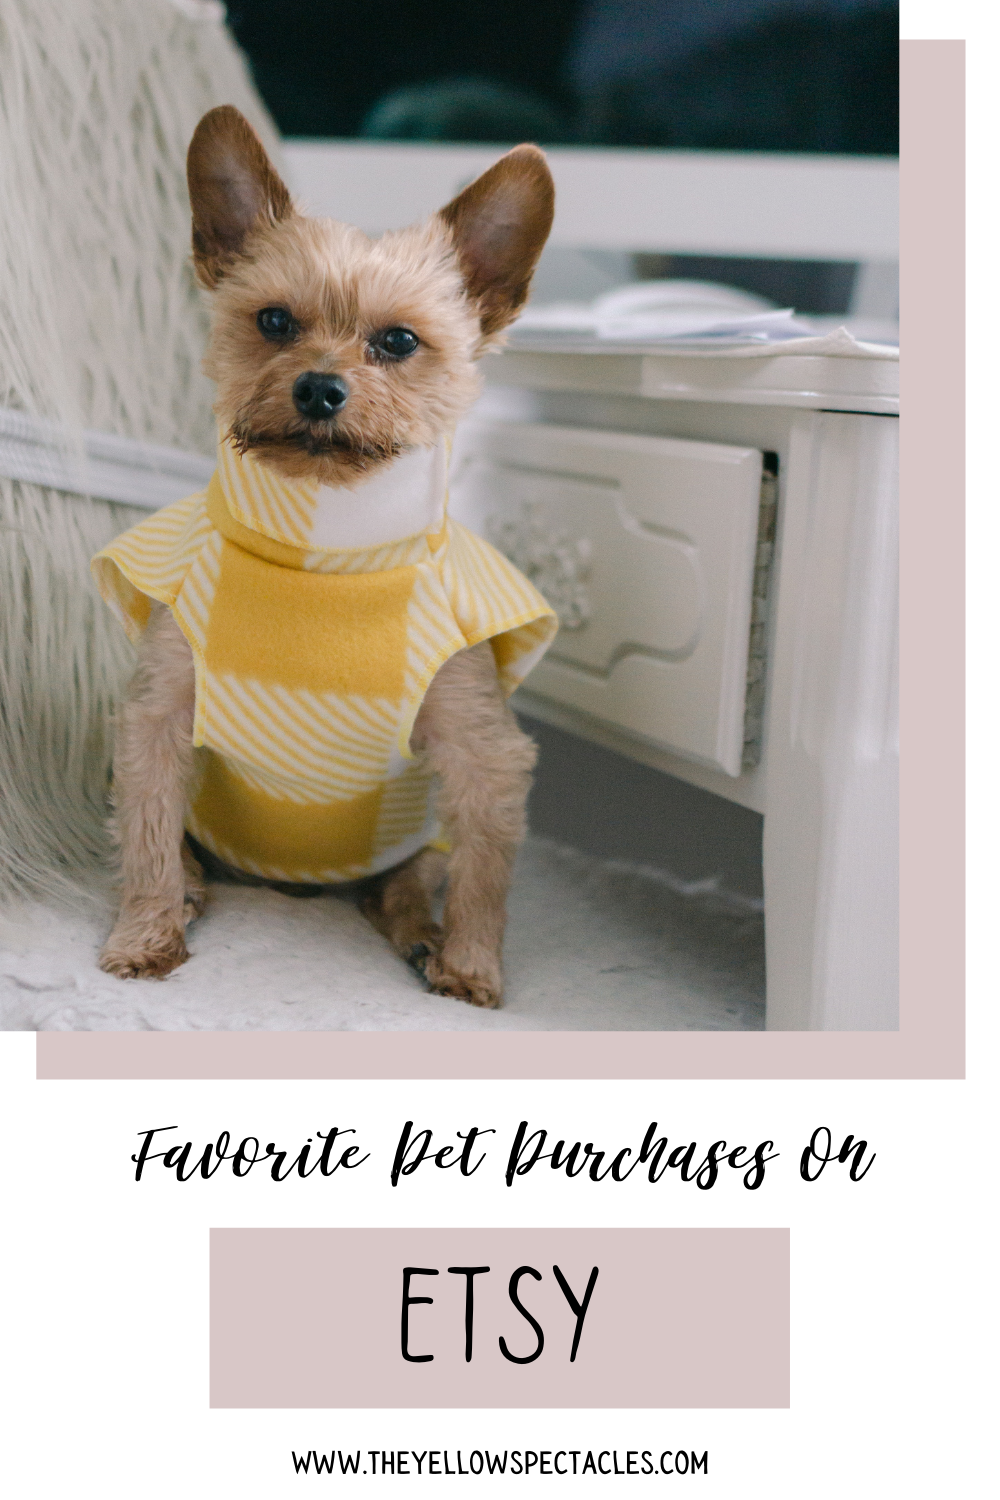 Here are my favorite Pet Purchases from Etsy